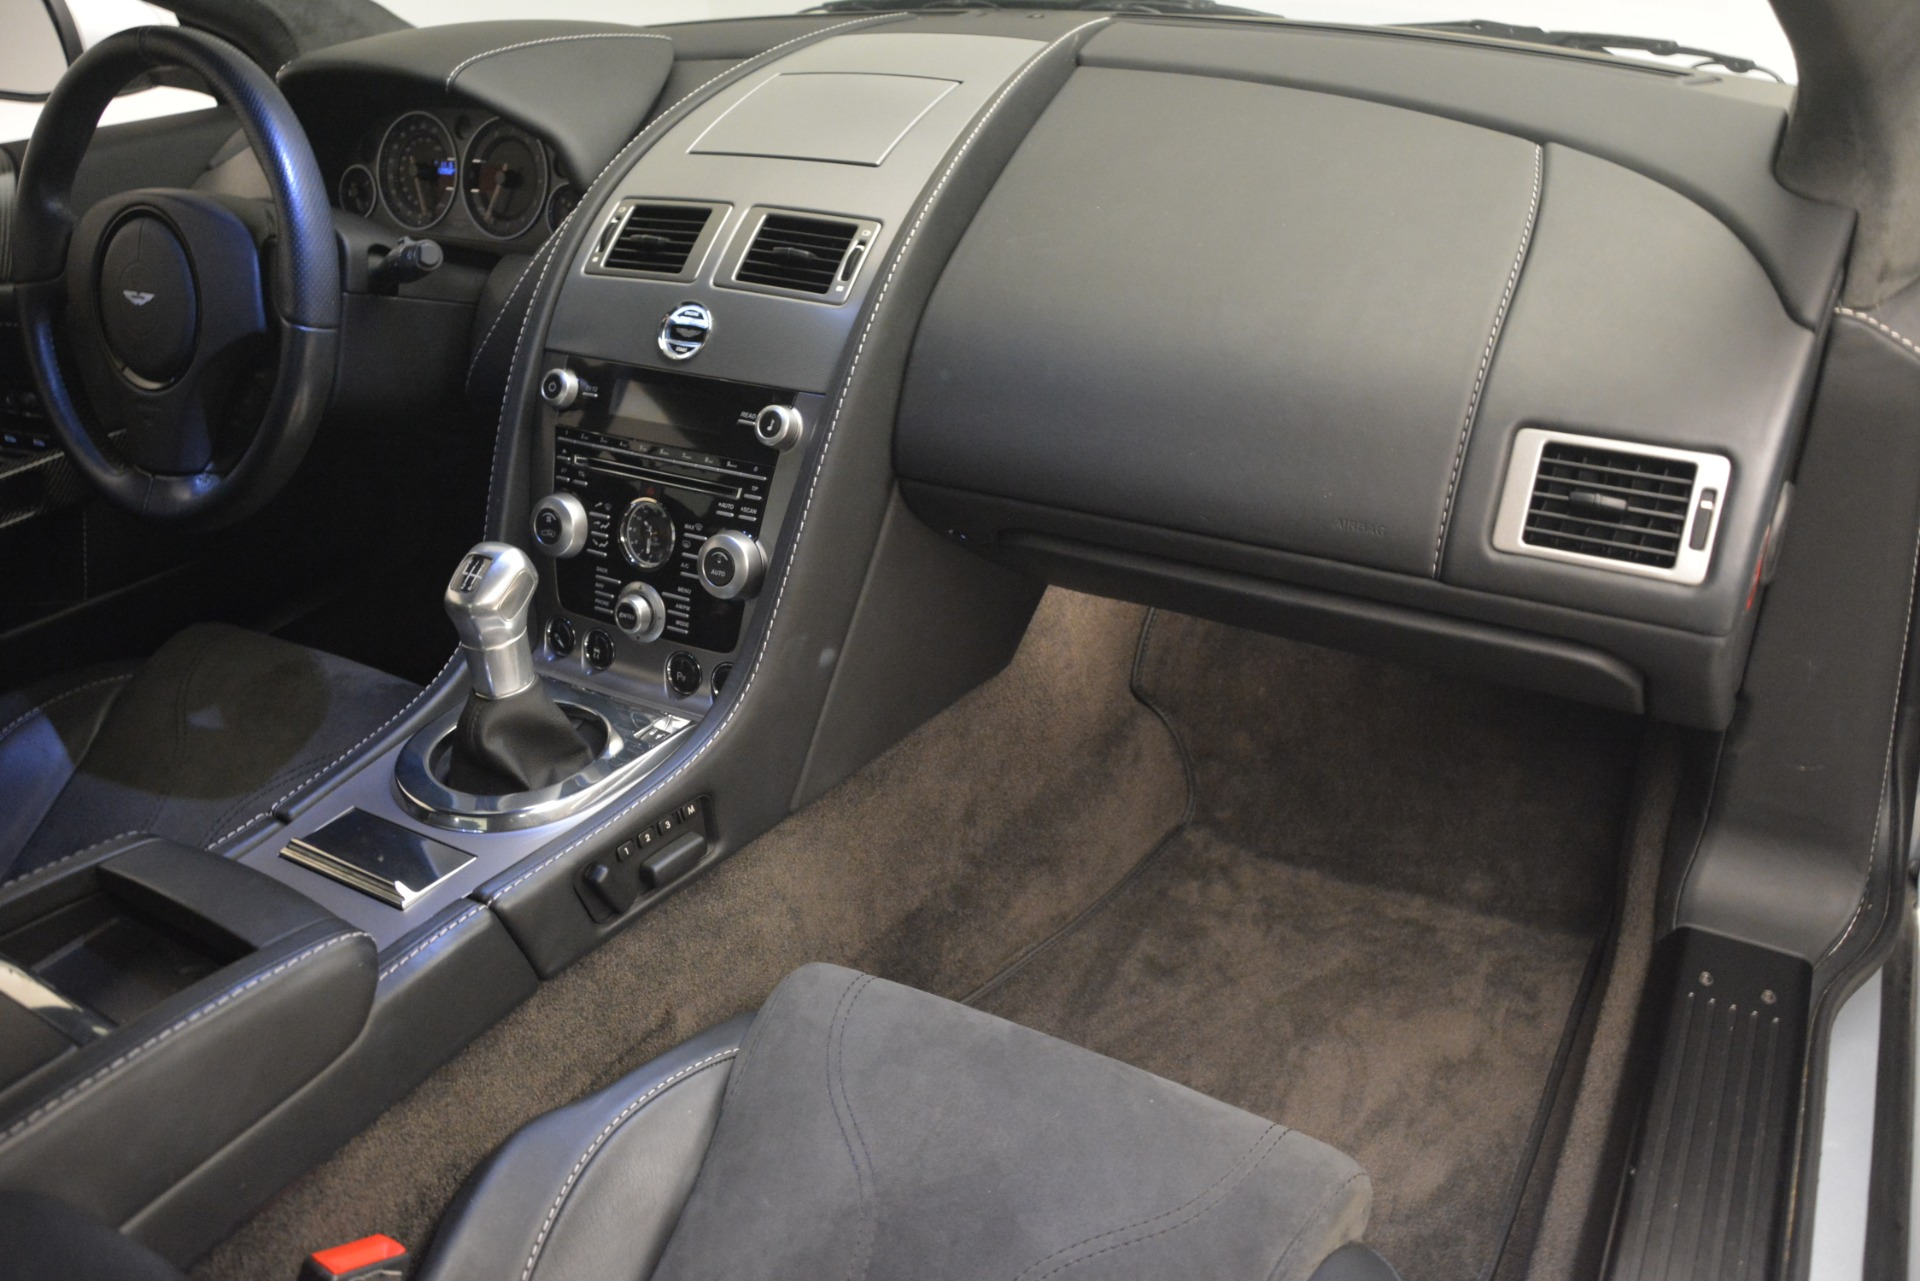 Used 2009 Aston Martin DBS Coupe For Sale In Greenwich, CT 3033_p23